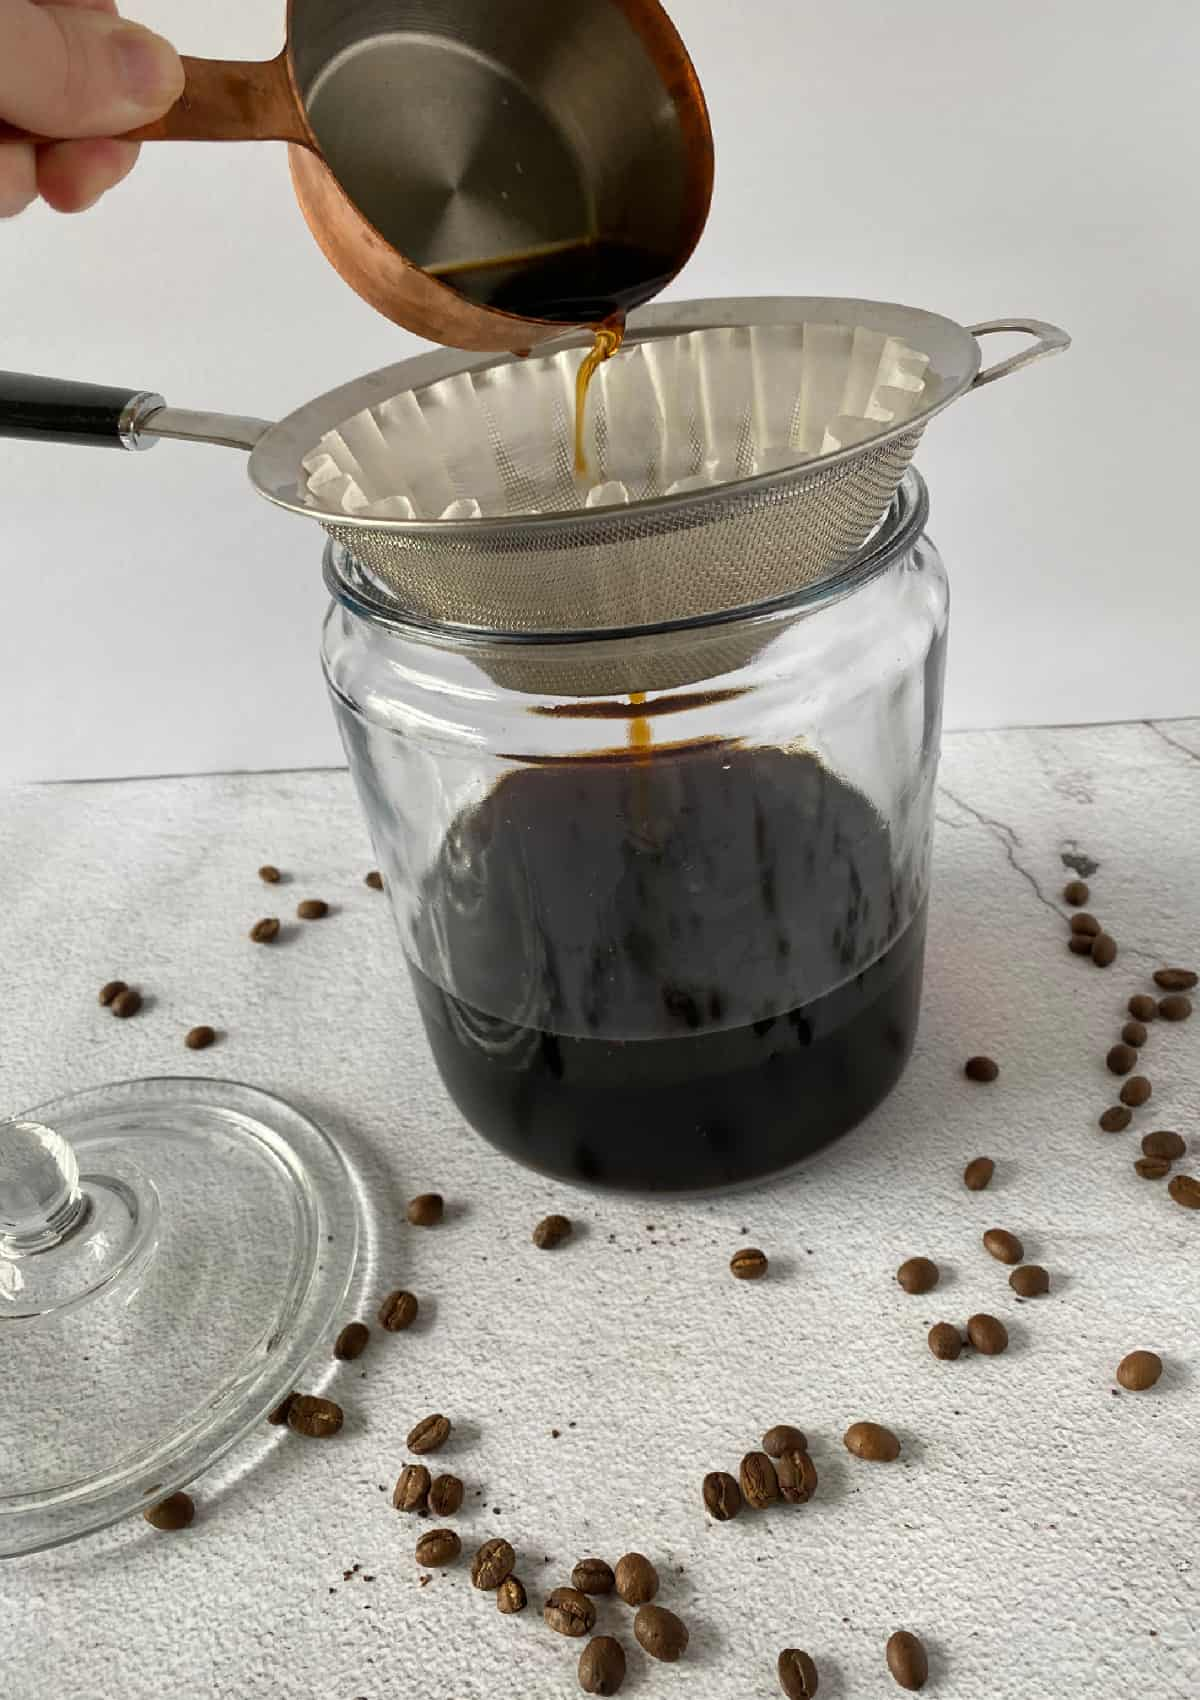 straining coffee grounds through a fine mesh sieve for cold brew coffee